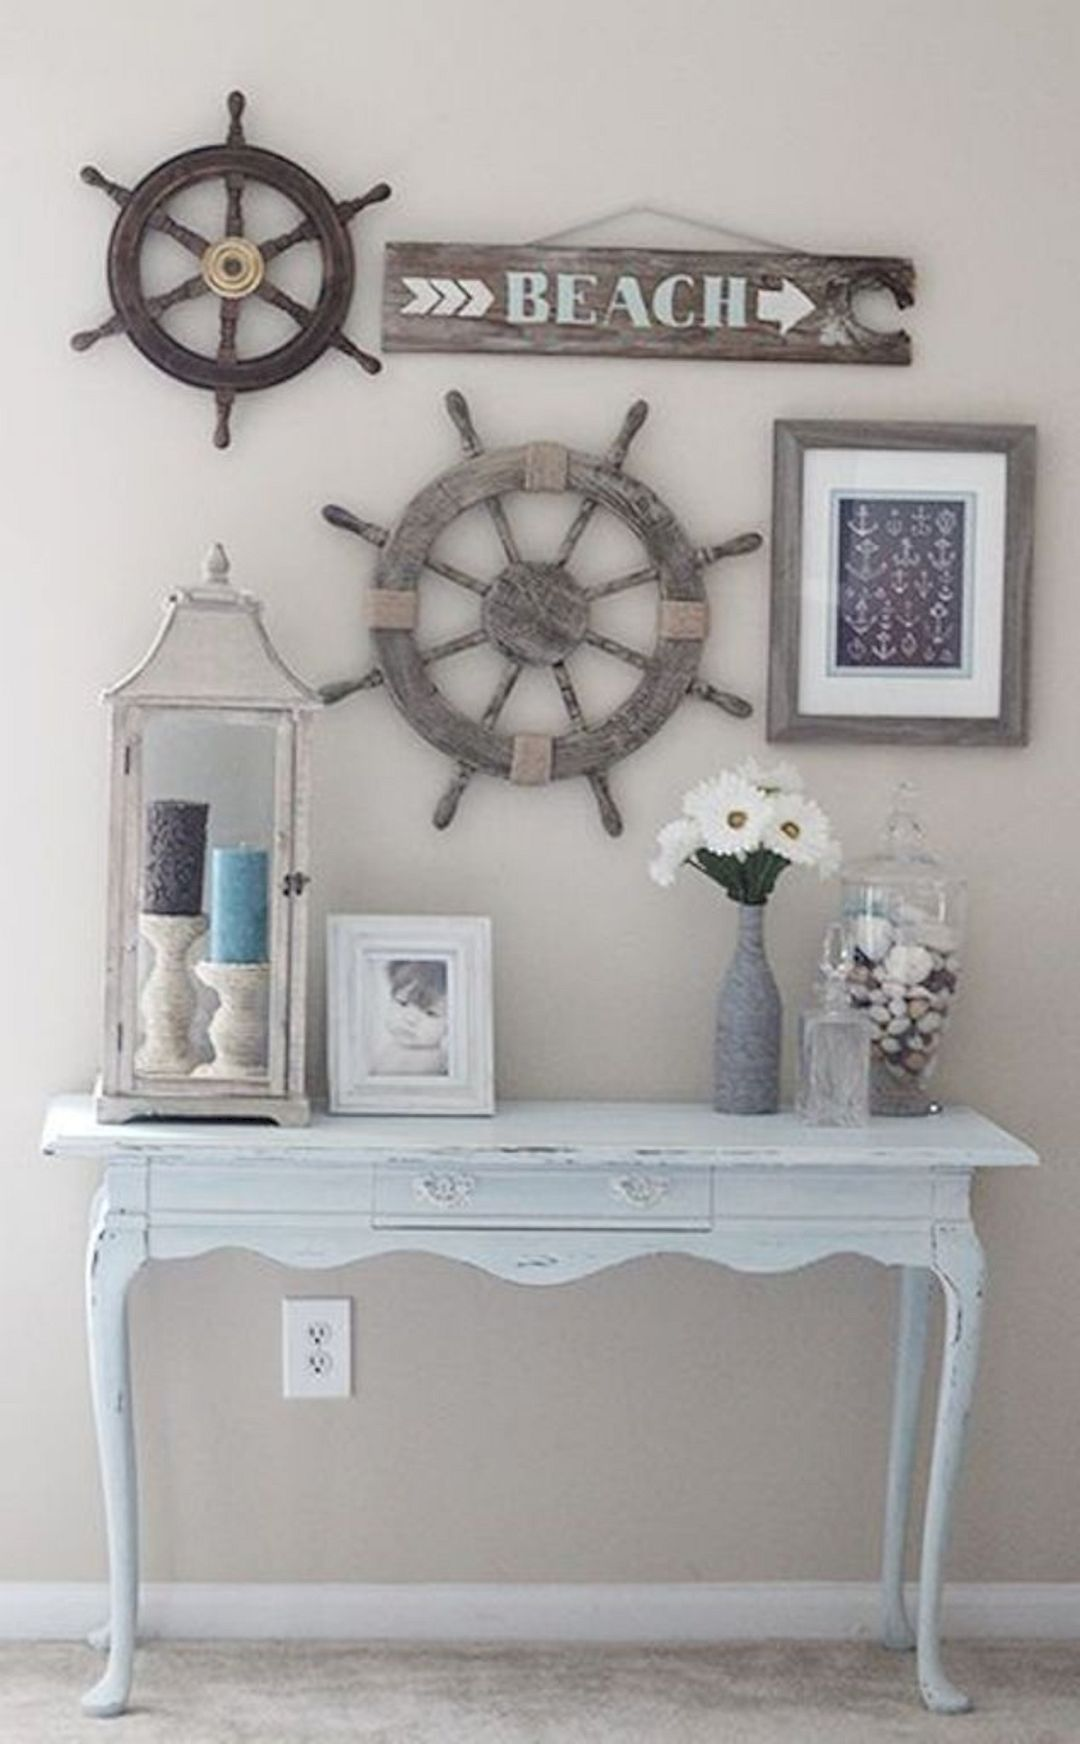 Ocean Themed Decor Ideas For Decorating A Living Room With A